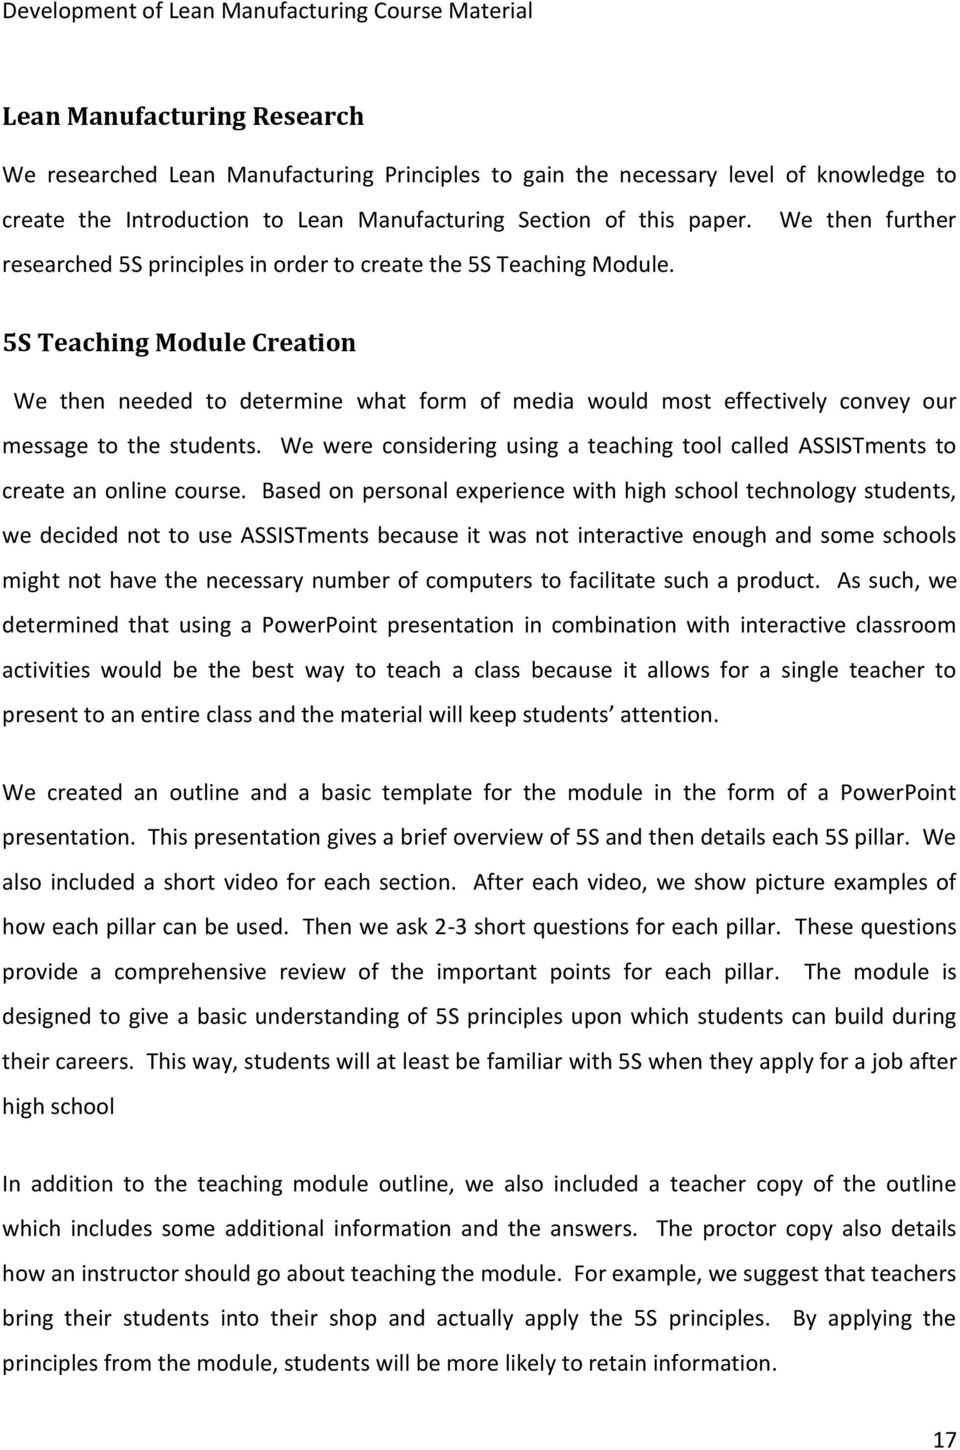 Development of Lean Manufacturing Course Material - PDF